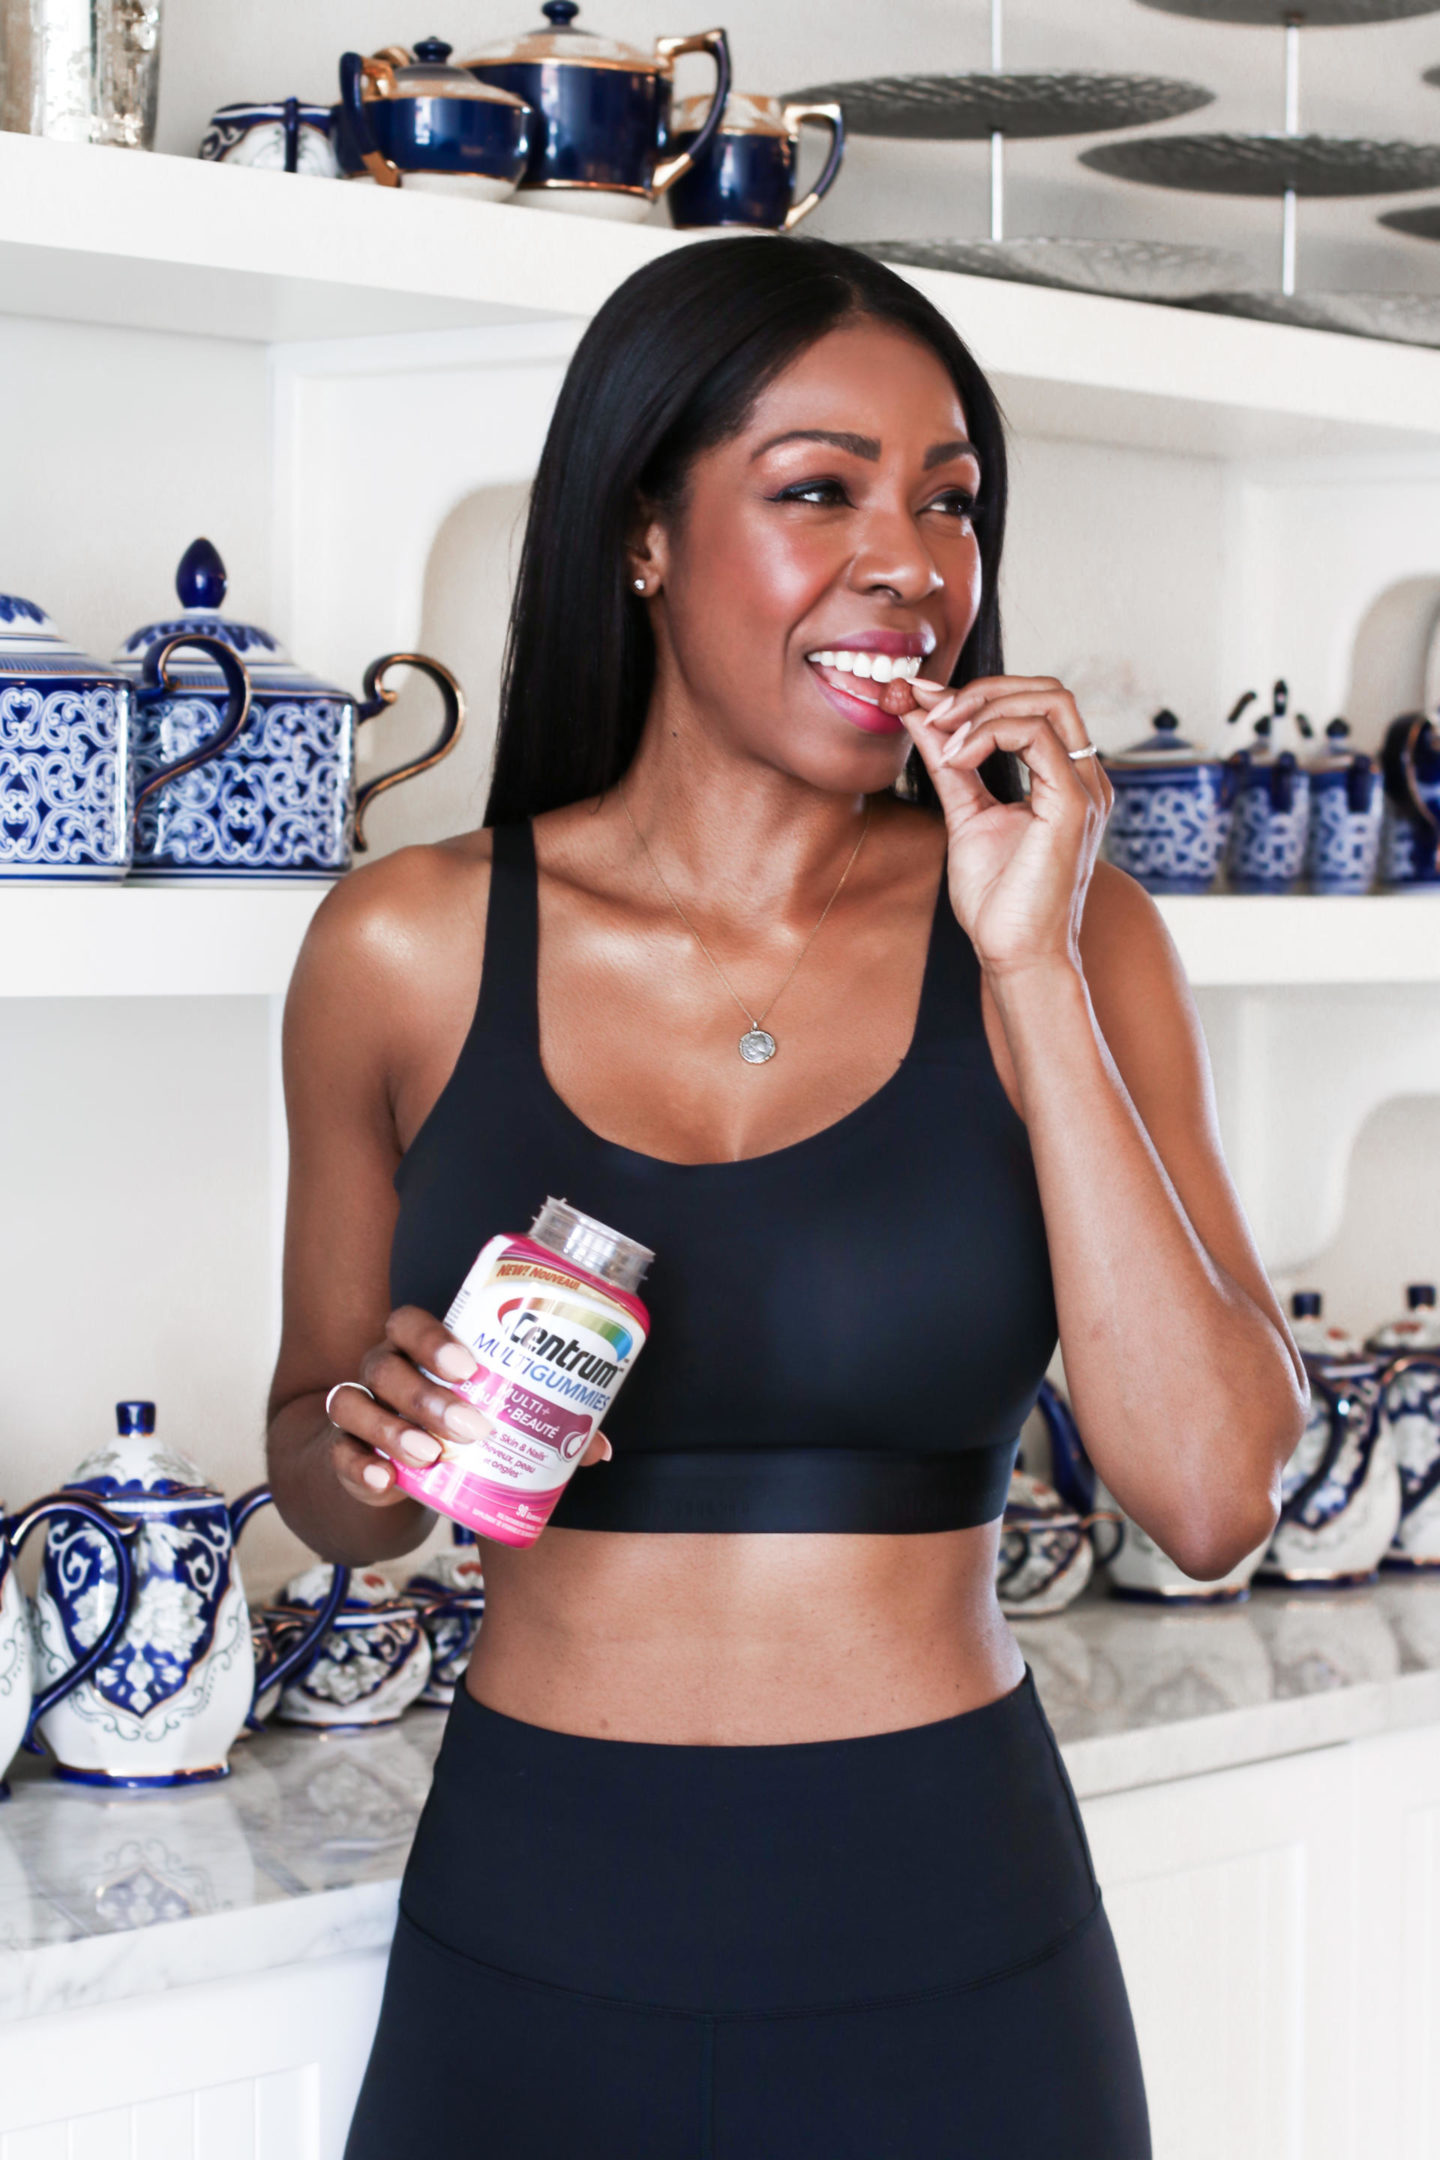 Dominique Baker Eating a Centrum Multi+Beauty Vitamin